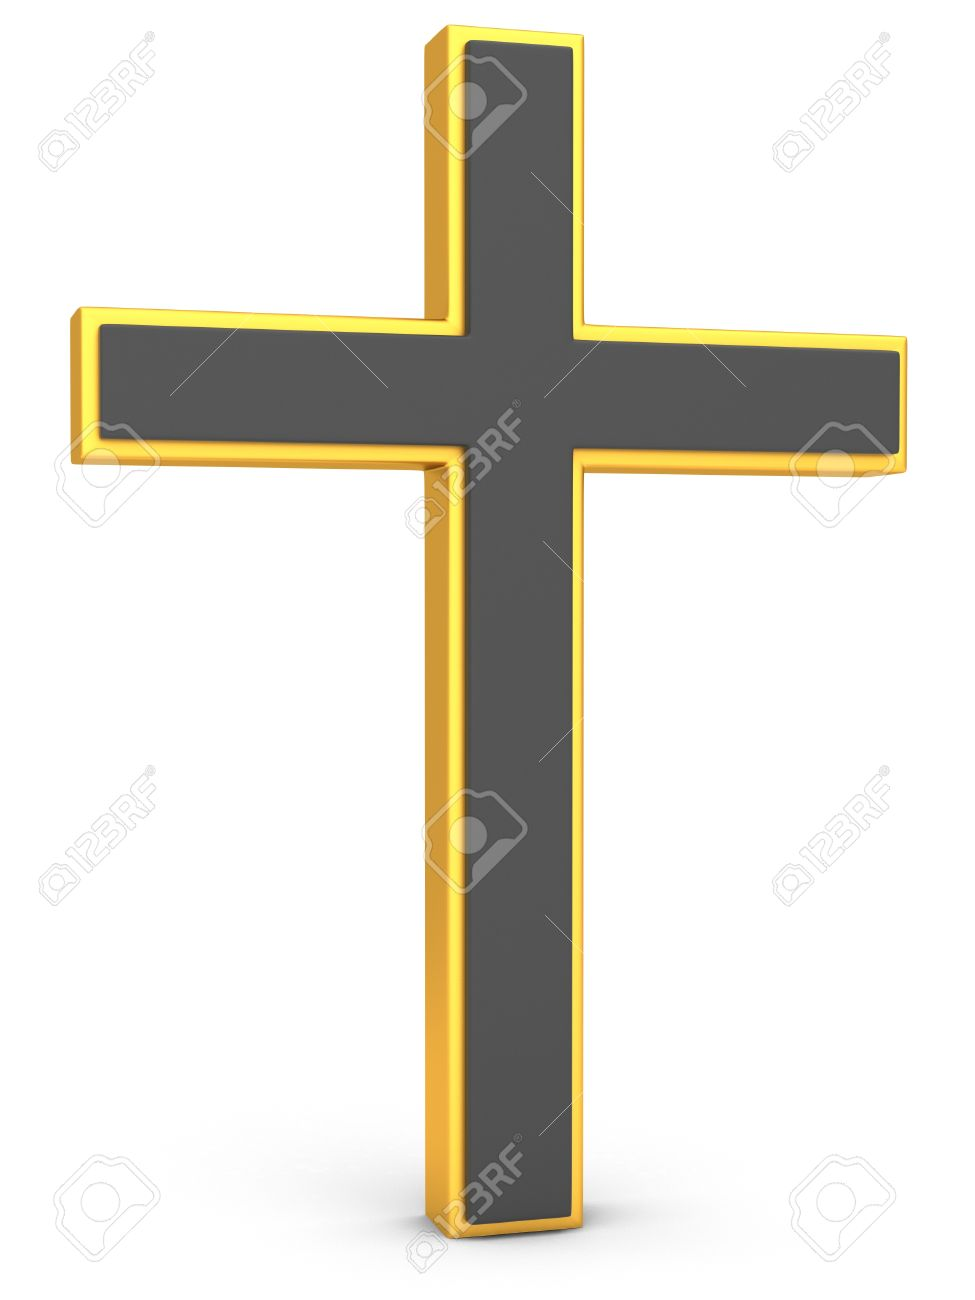 Christianity symbol gold cross on a white background 3d christianity symbol gold cross on a white background 3d illustration stock illustration 63885911 buycottarizona